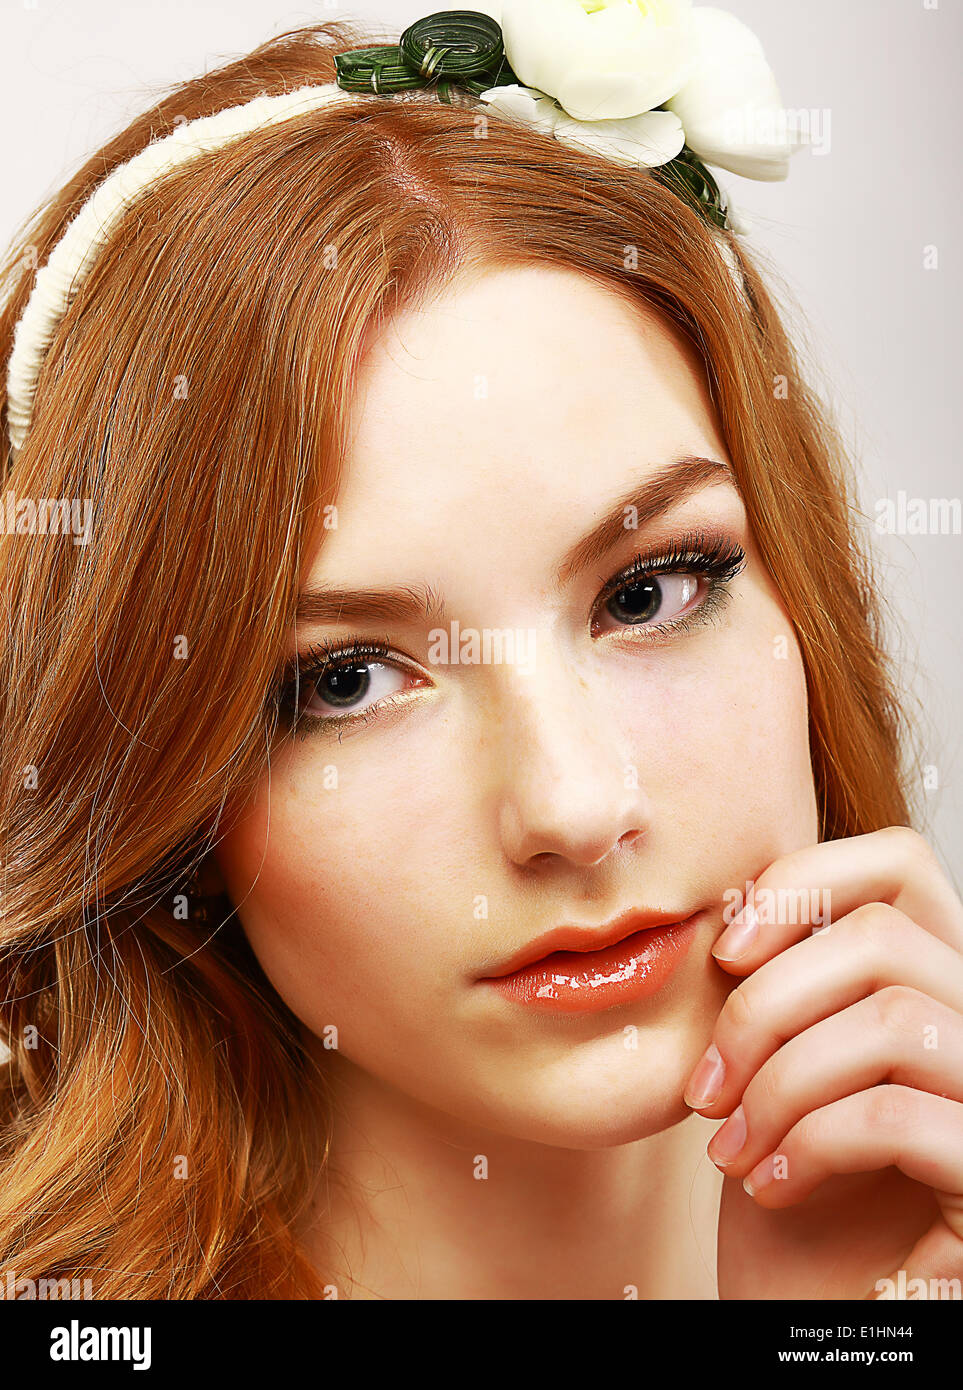 Goodness. Portrait of Young Meek Woman with White Flower on her Head - Stock Image